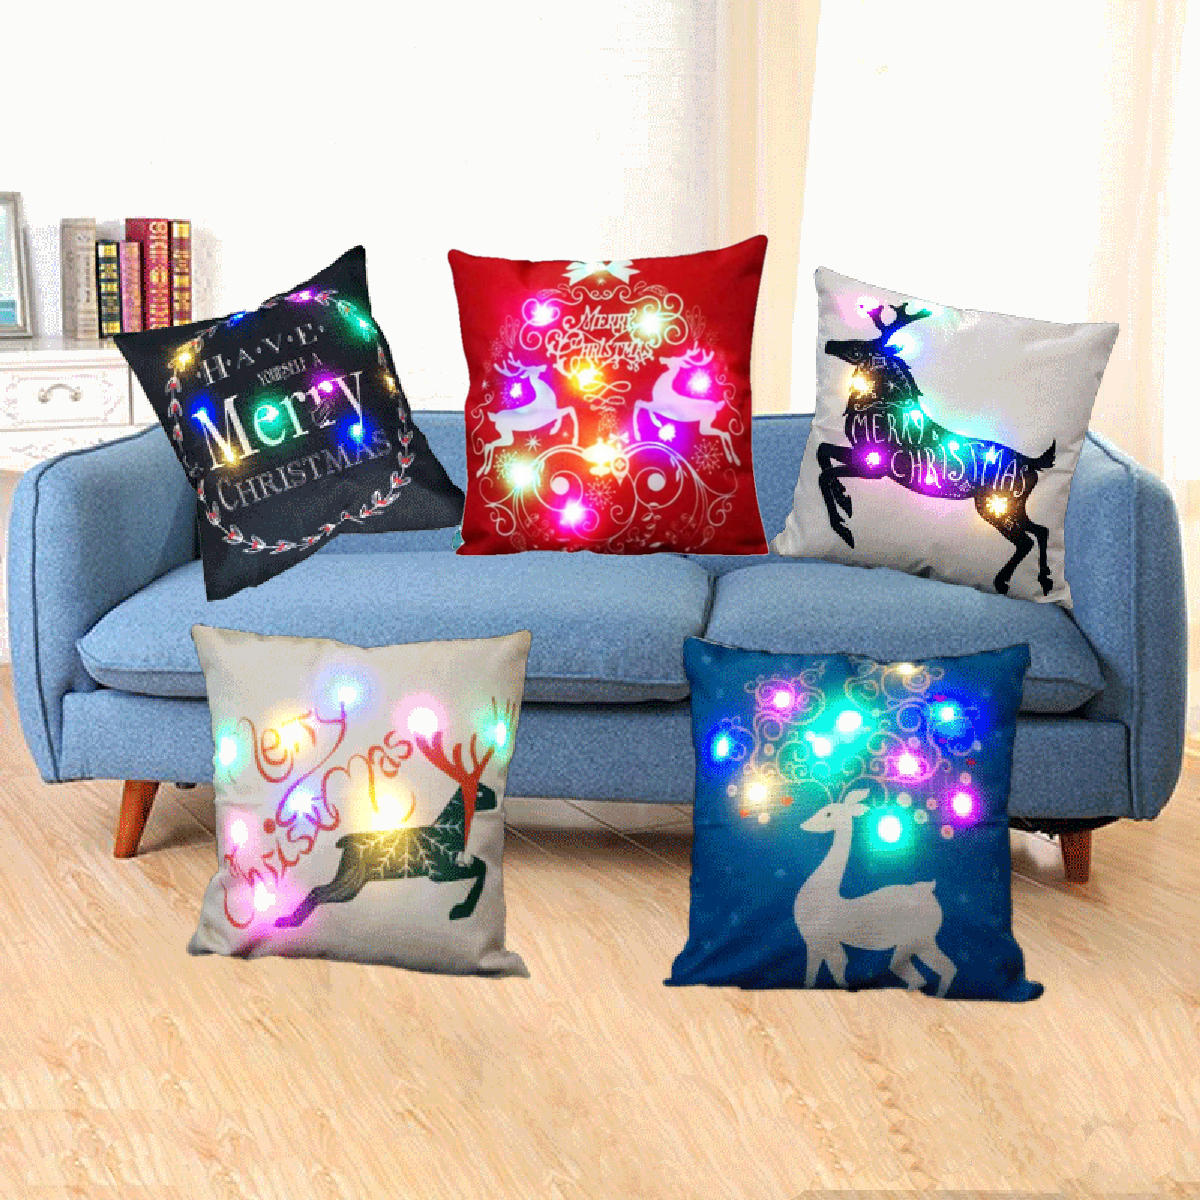 Sofa Led Christmas Led Lights Linen Pillow Case Cushion Cover Home Decor Bed Sofa Case